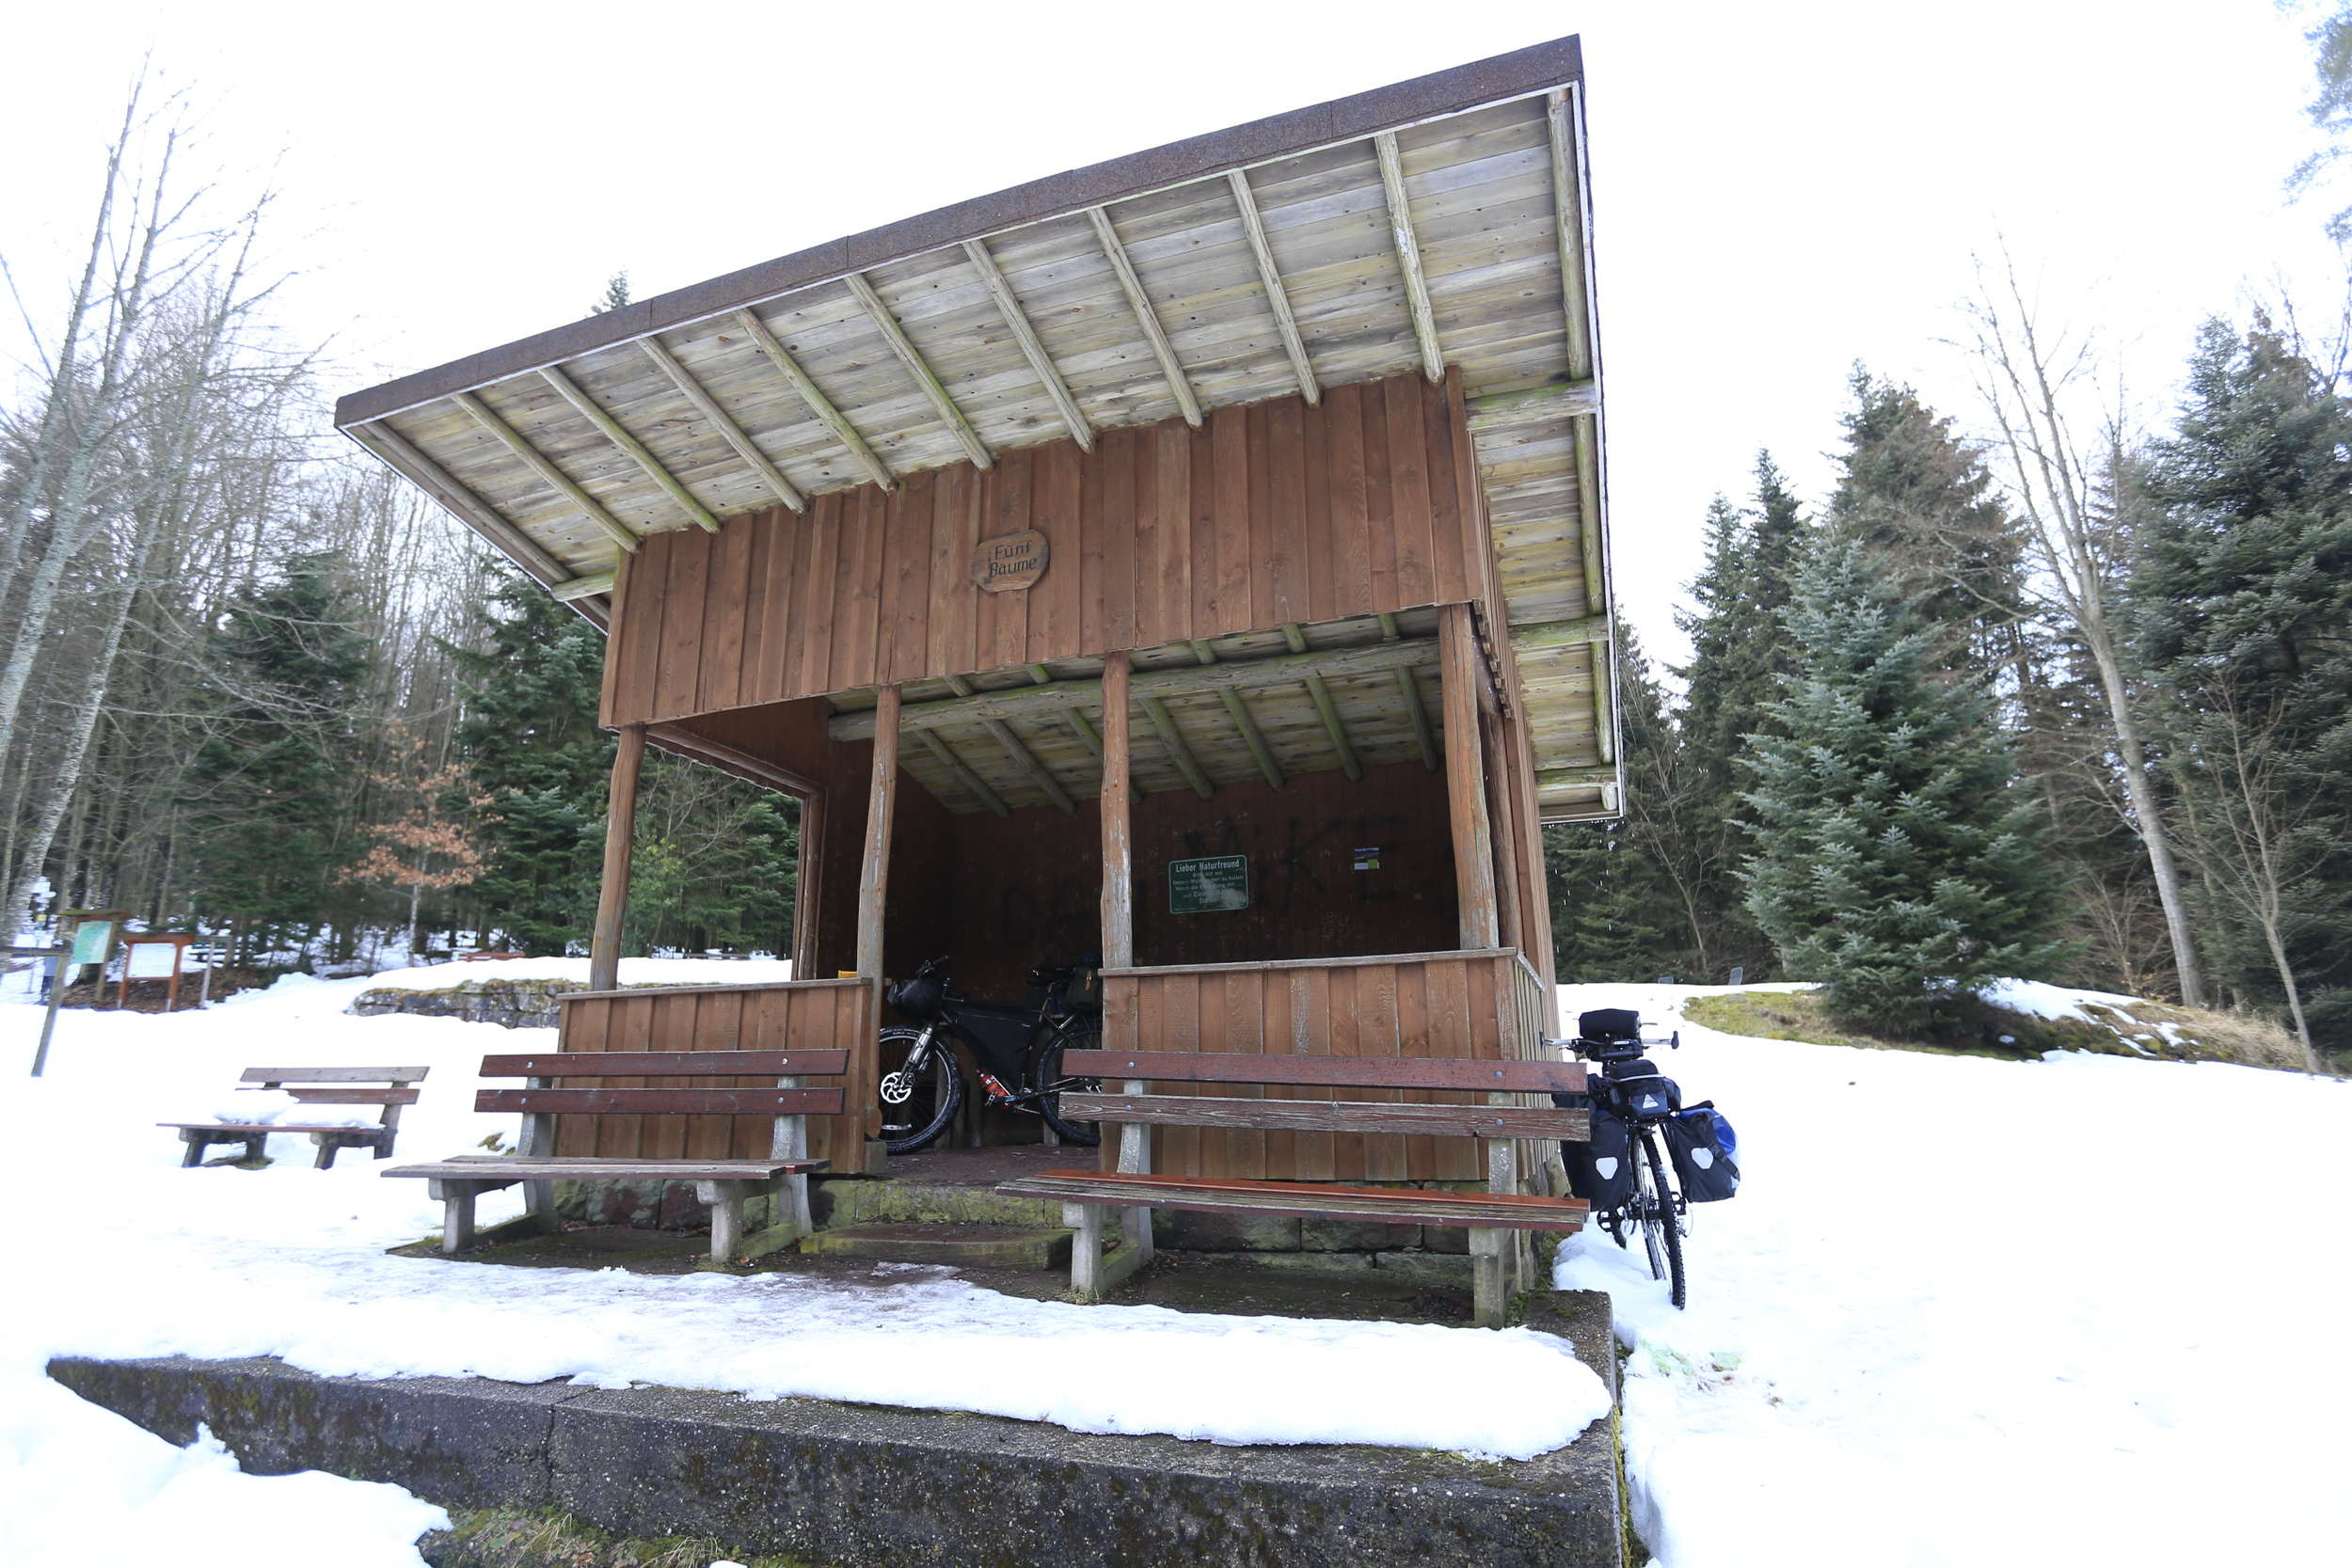 The Black forest has numerous shelters along the walking/riding routes. These huts may be basic, but they provide a valuable camping alternative in severe weather conditions.